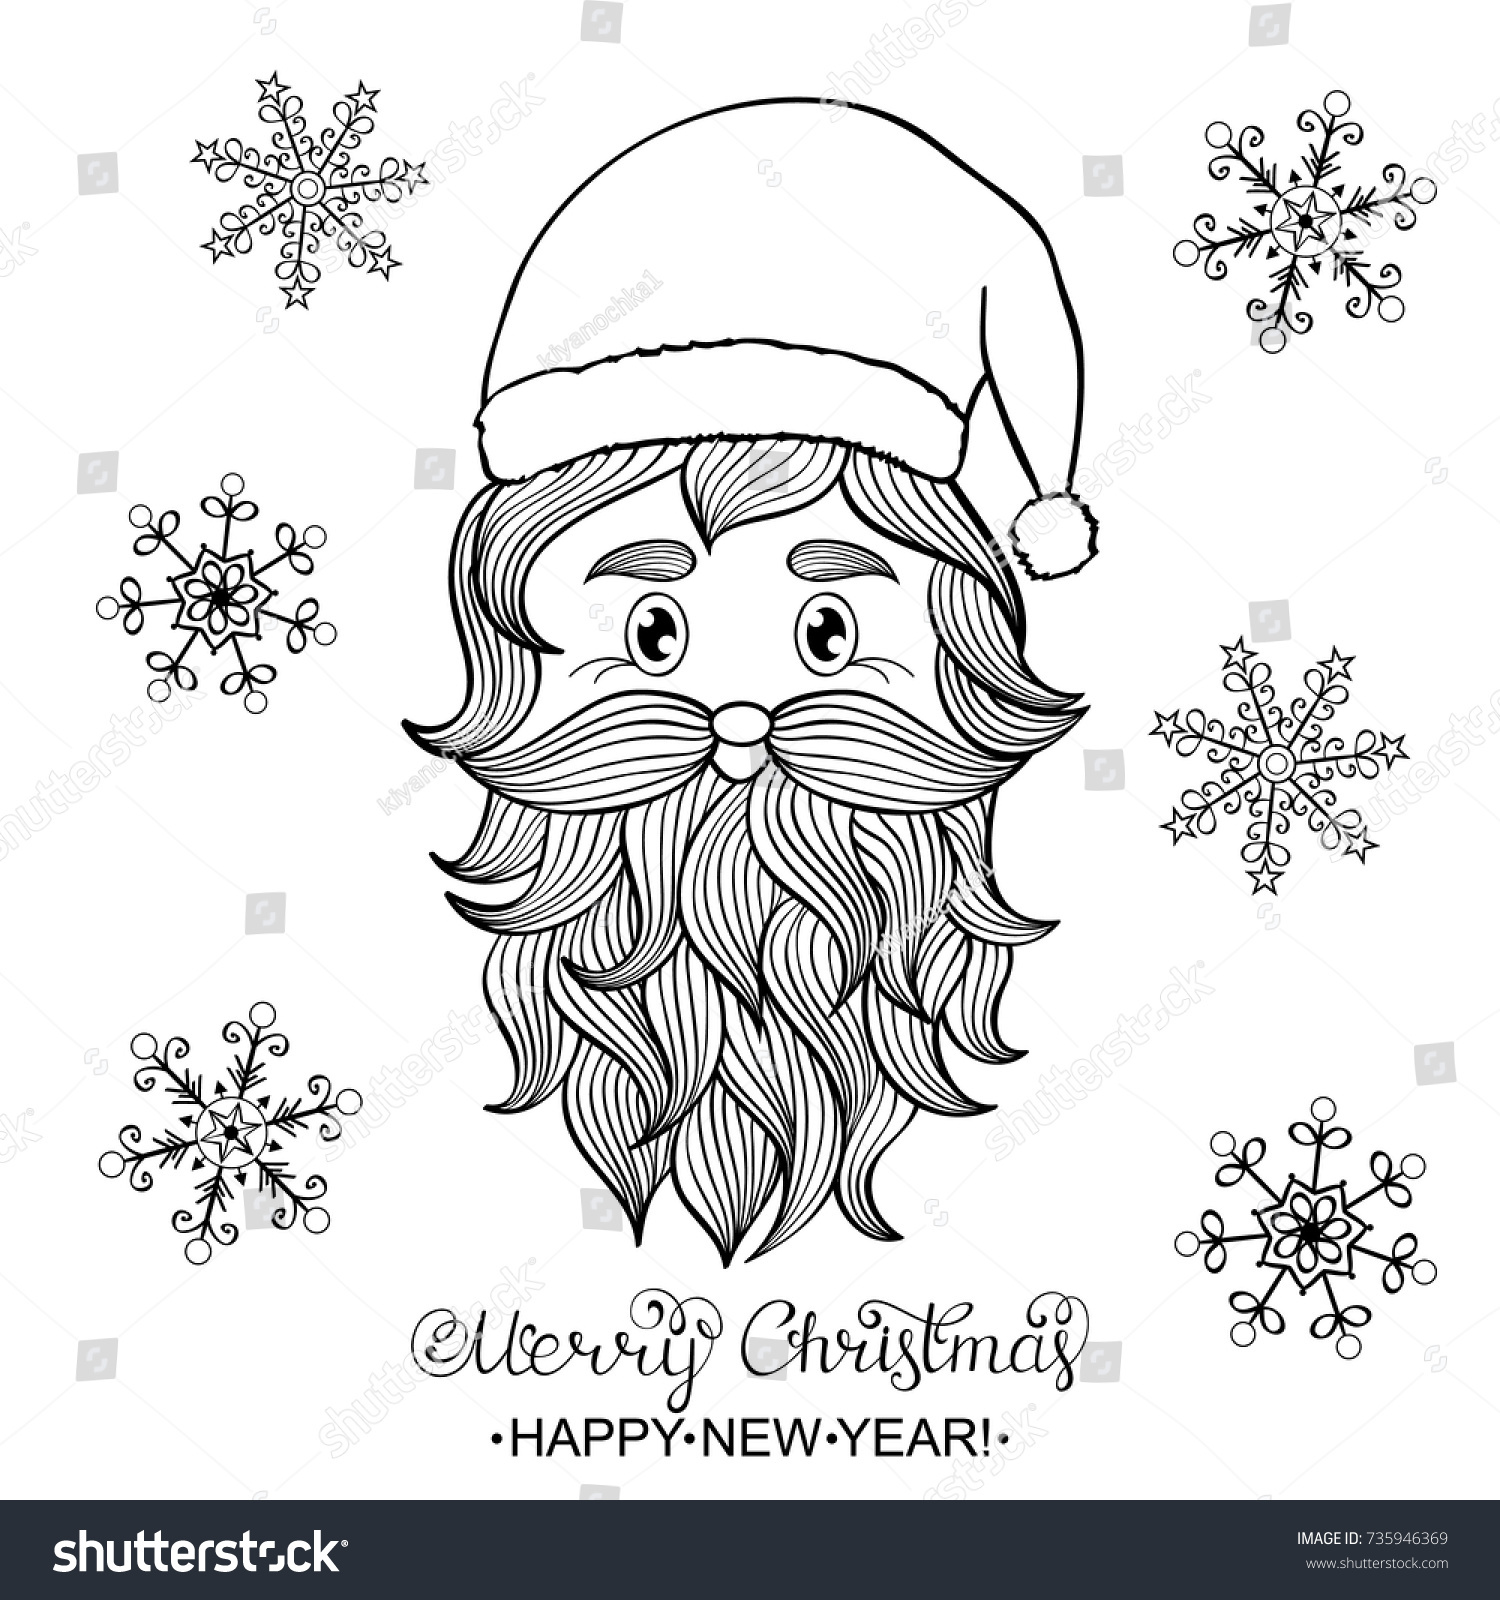 Santa Claus Head Coloring Pages With Hand Drawn On Stock Vector Royalty Free 735946369